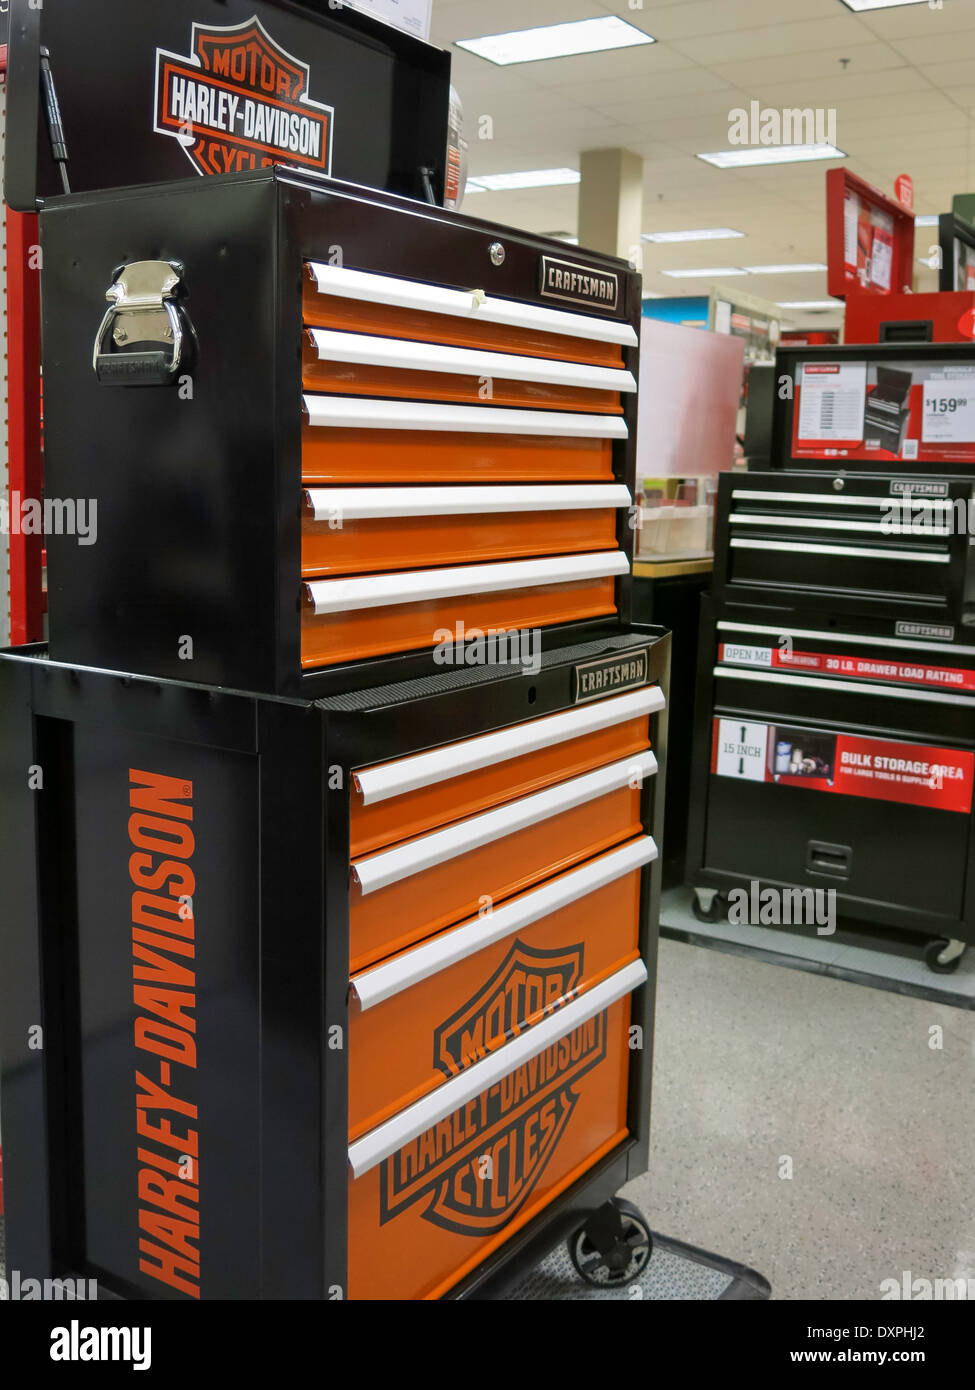 Harley Davidson Specialty Branded Tool Chest Sears Store Tool Stock Photo Alamy